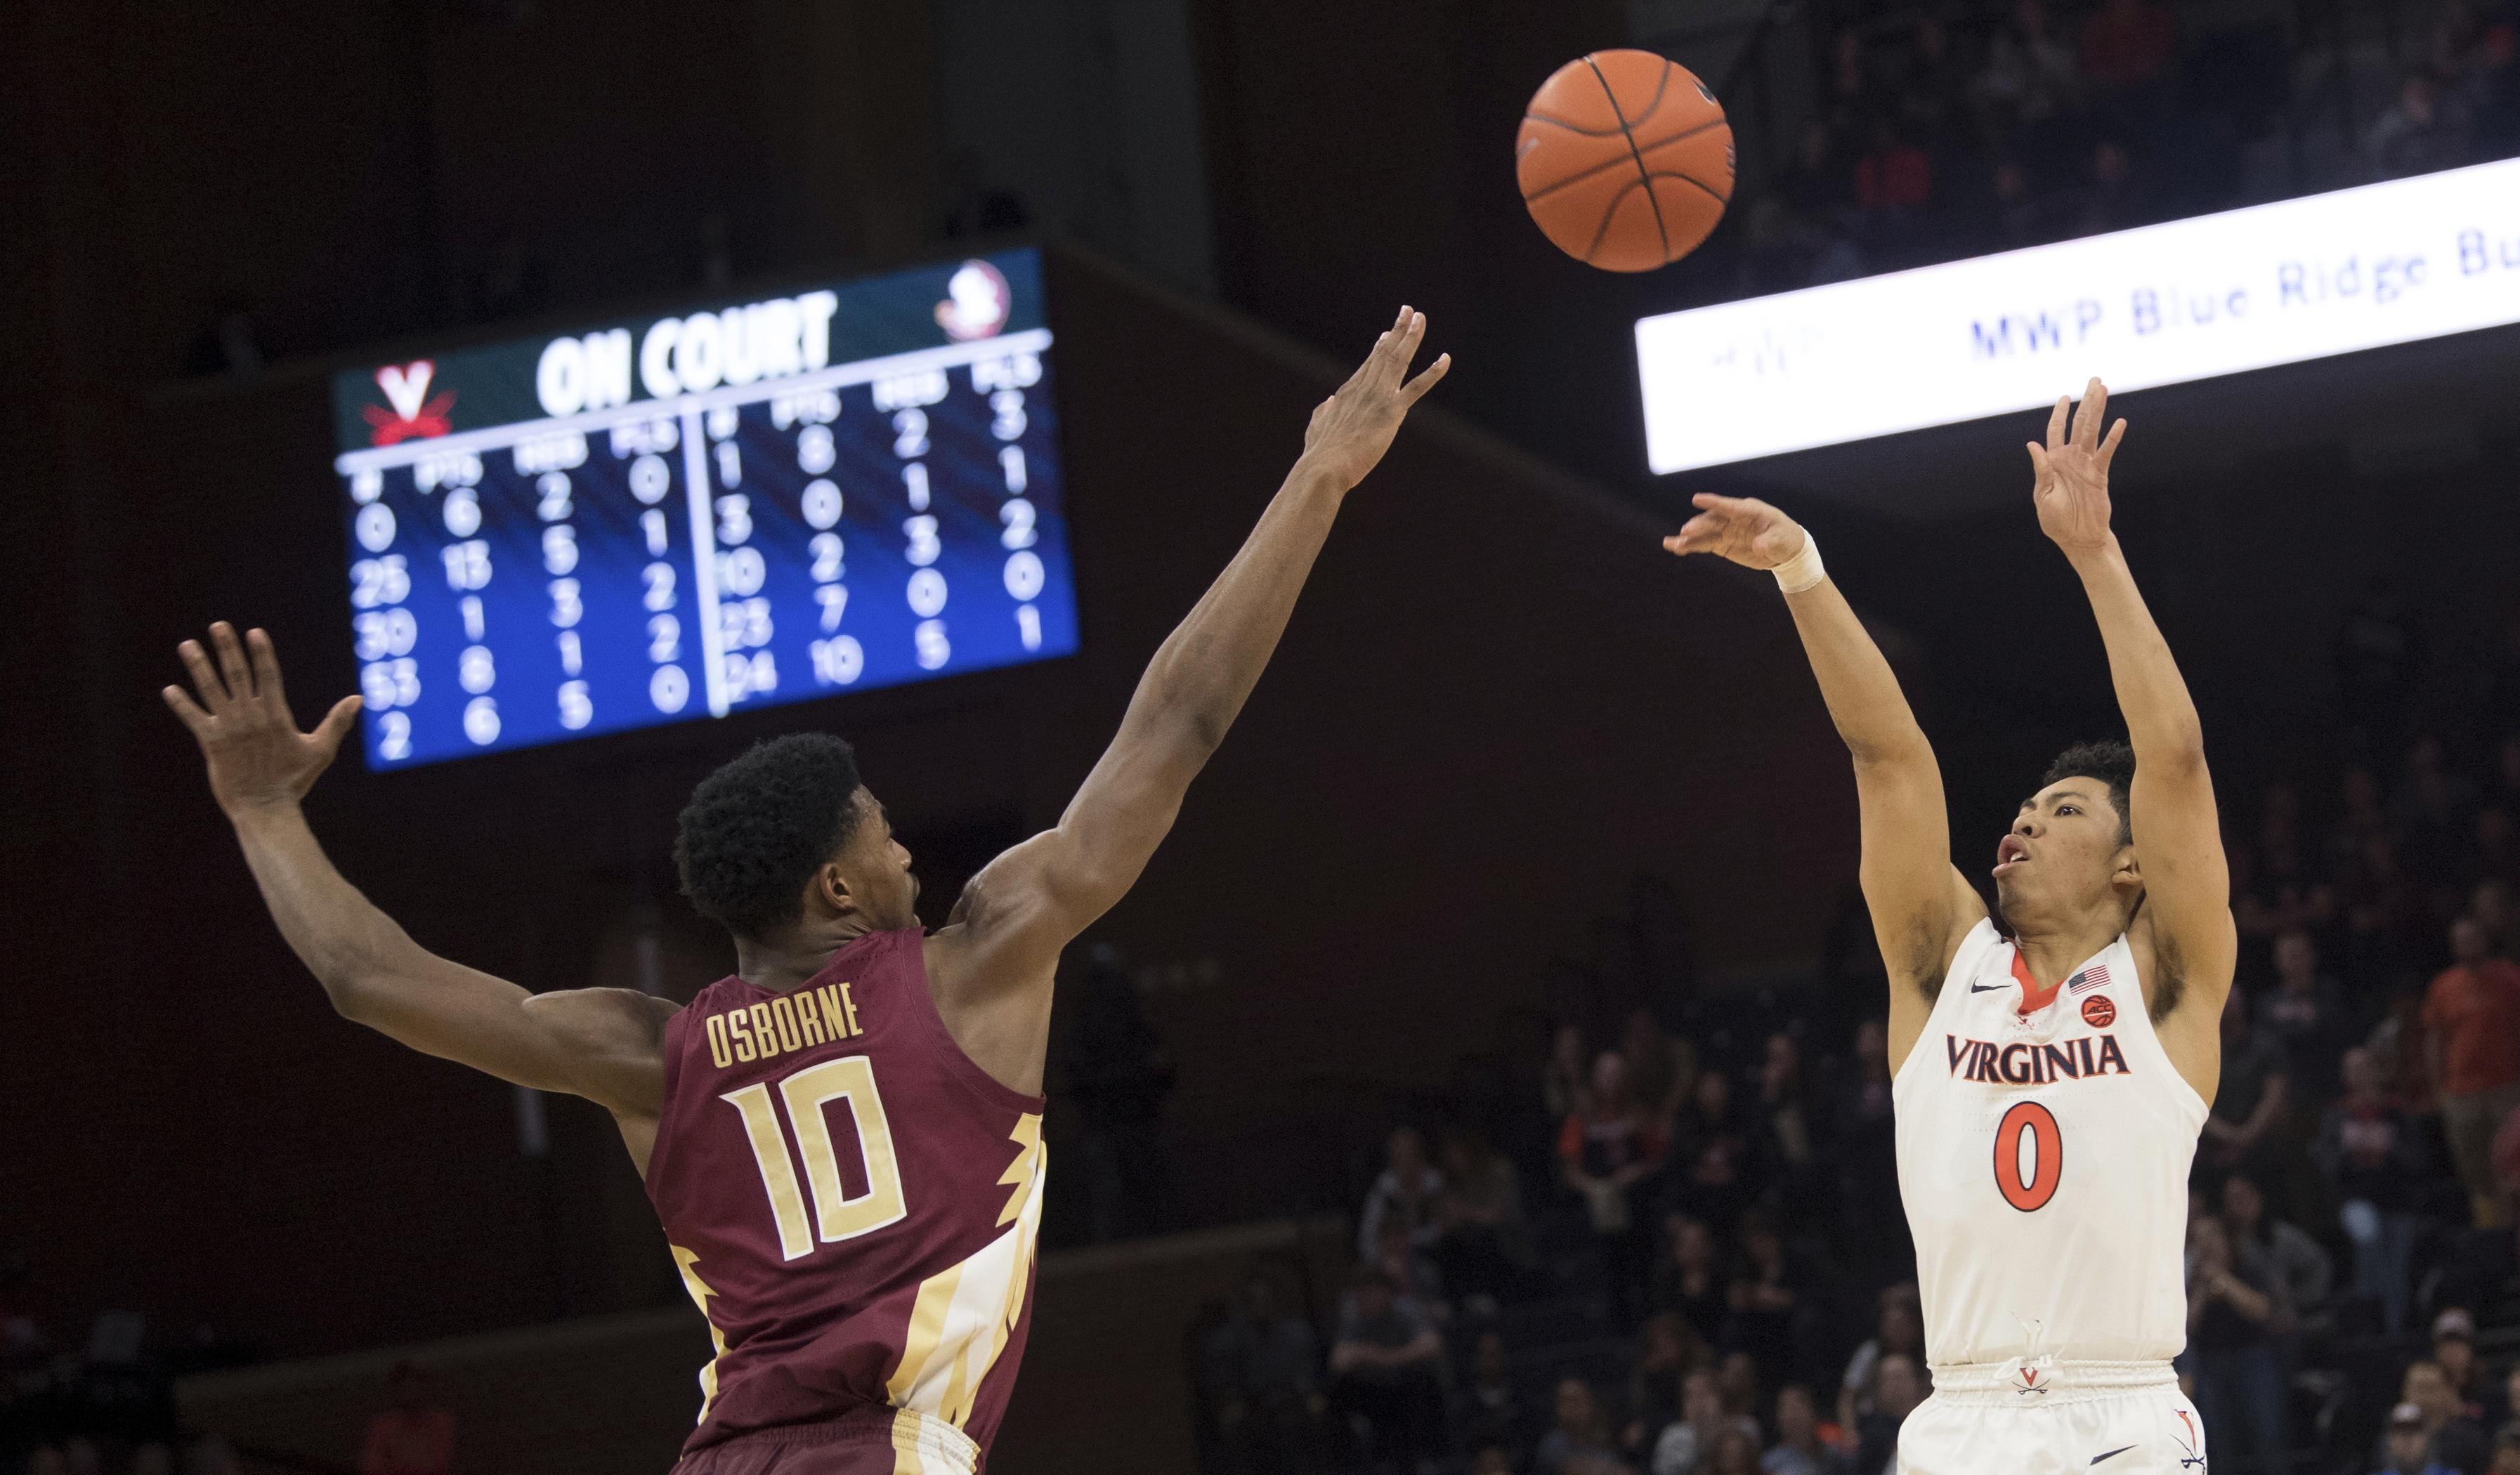 Virginia Cavaliers vs. Florida State Seminoles - 1/28/20 College Basketball Pick, Odds & Prediction